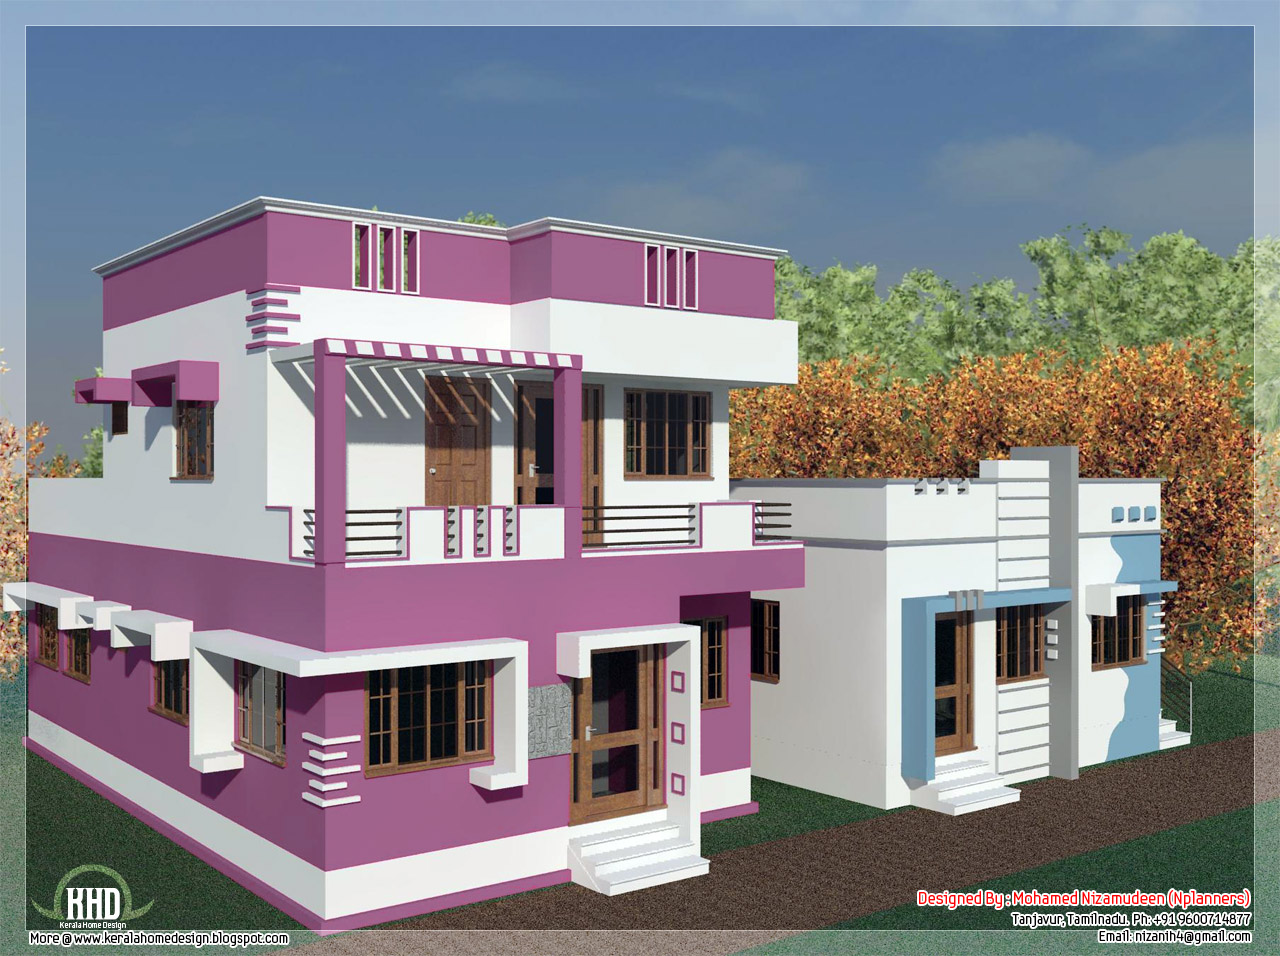 sincere-from-my-heart: Tamilnadu model home desgin in 3000 sq.feet